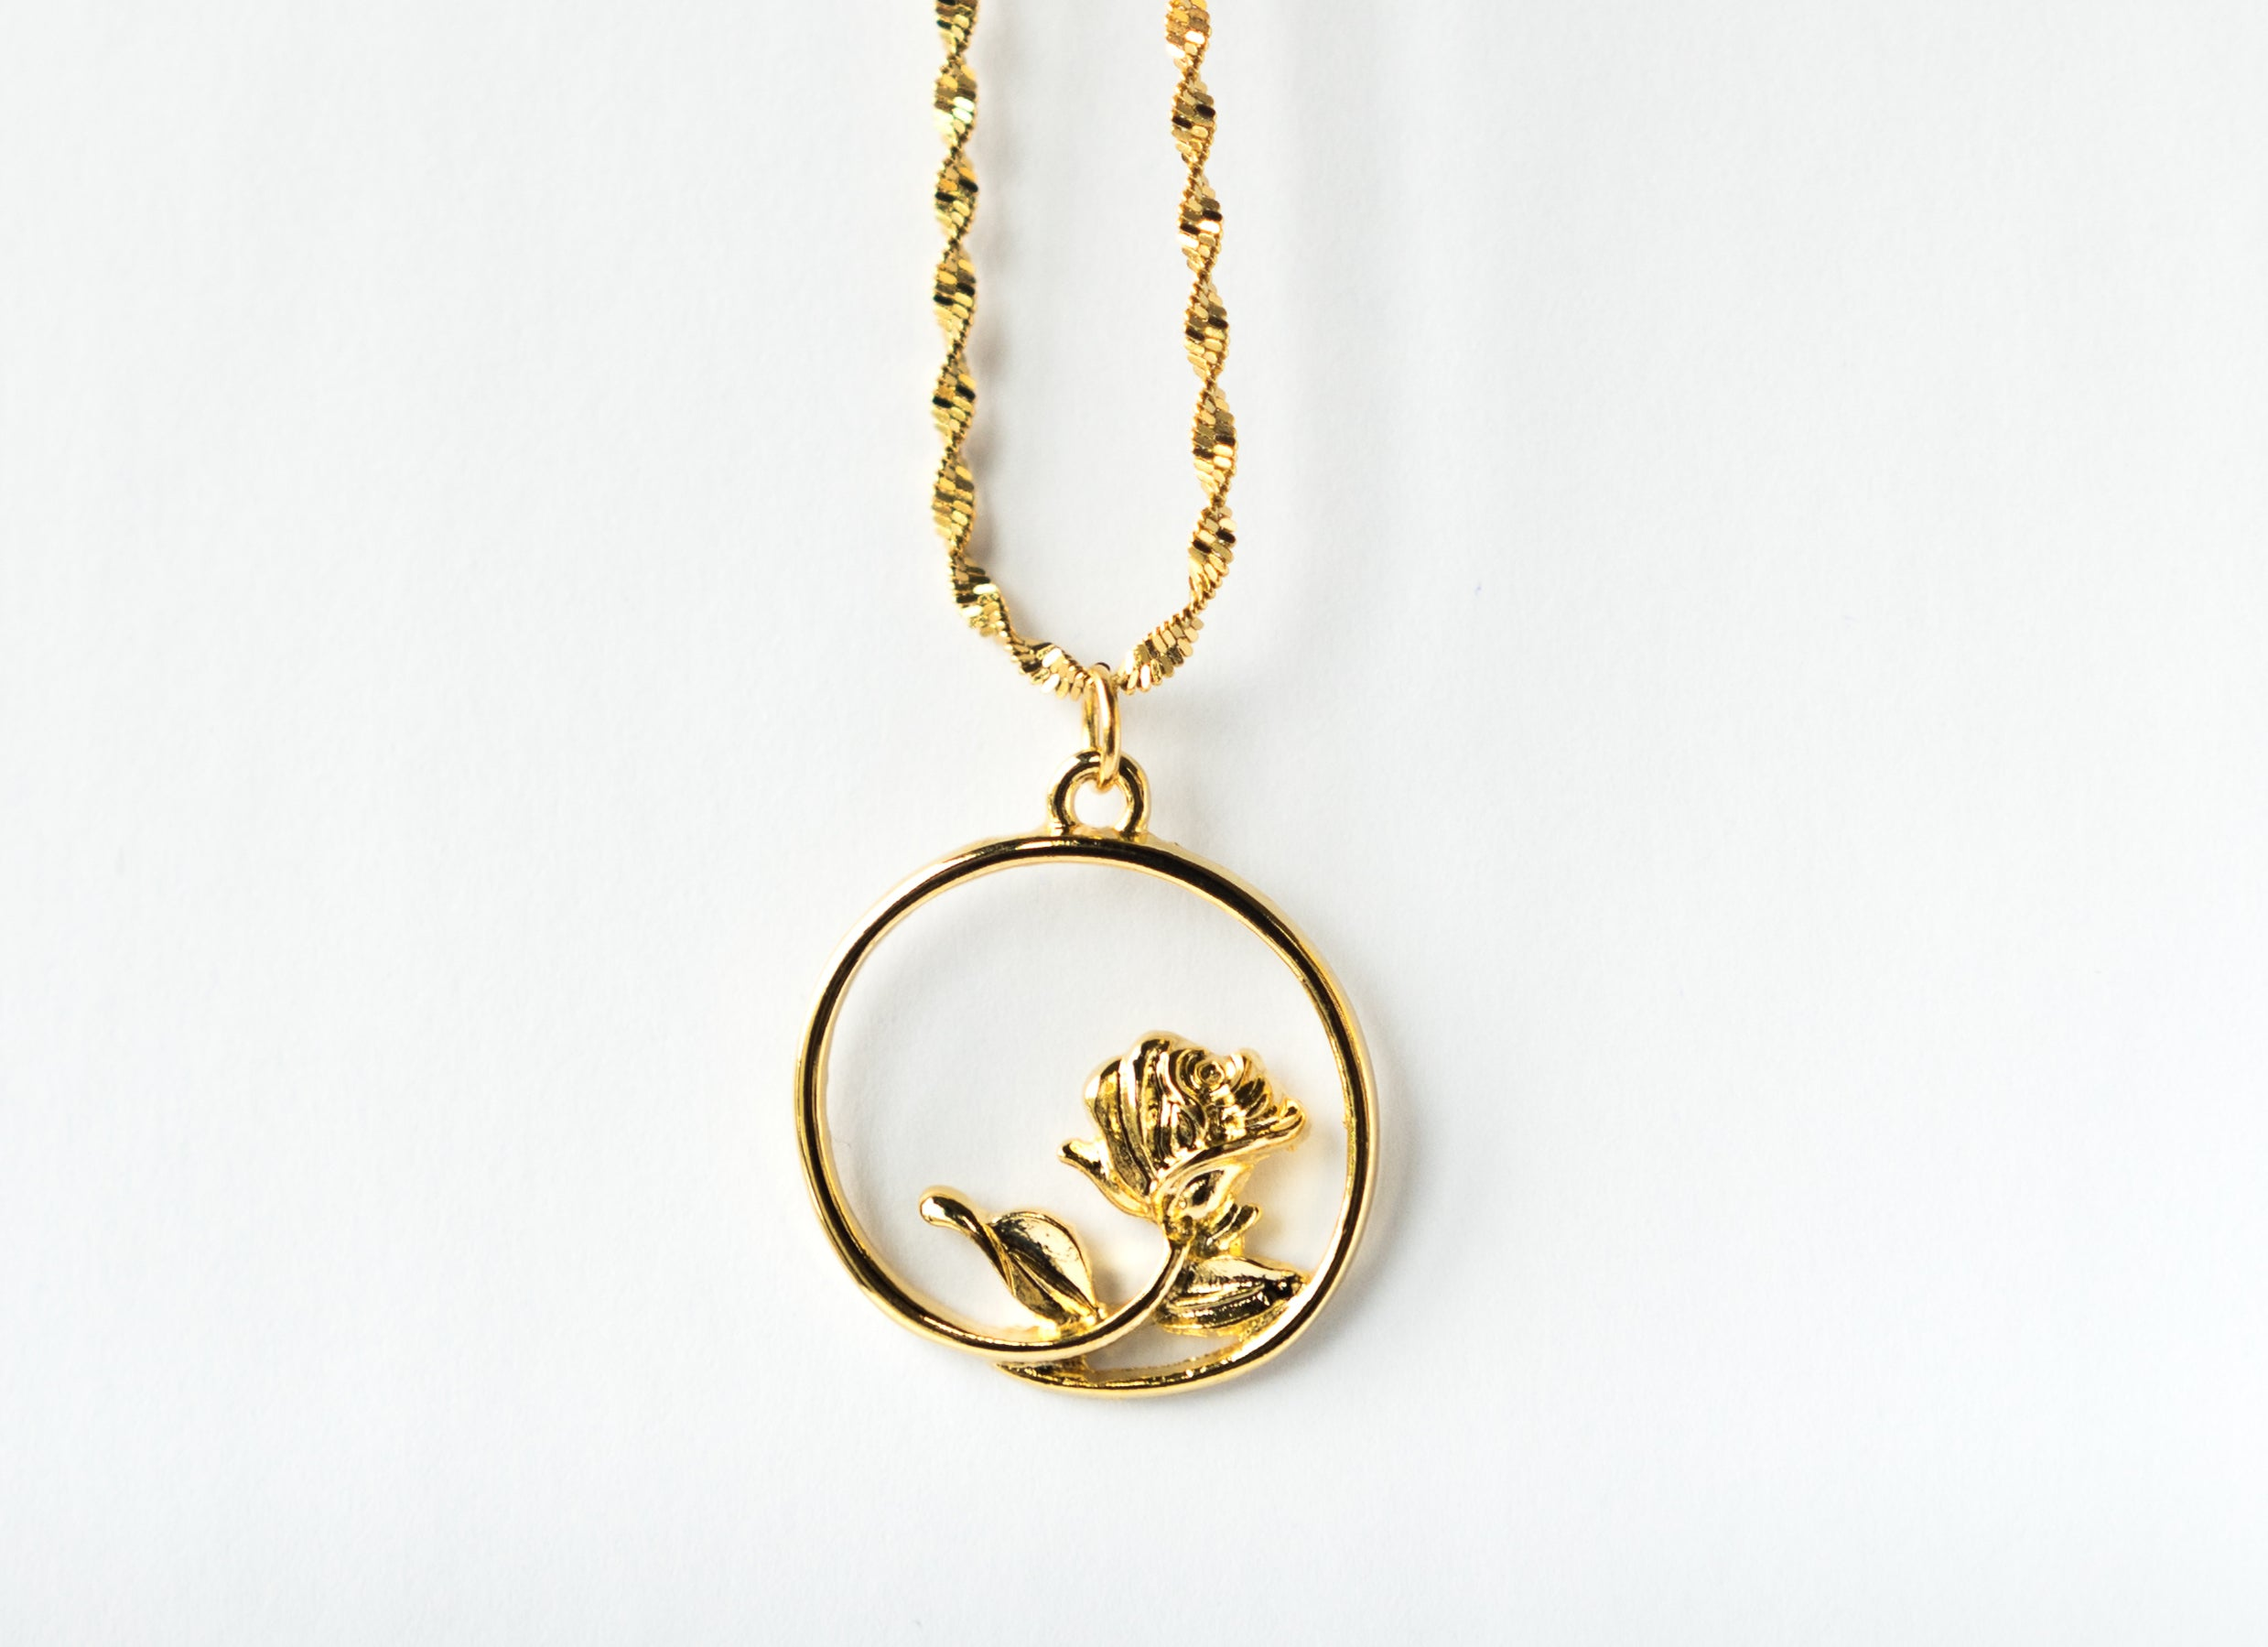 The Gold Rose Pendant The Glared